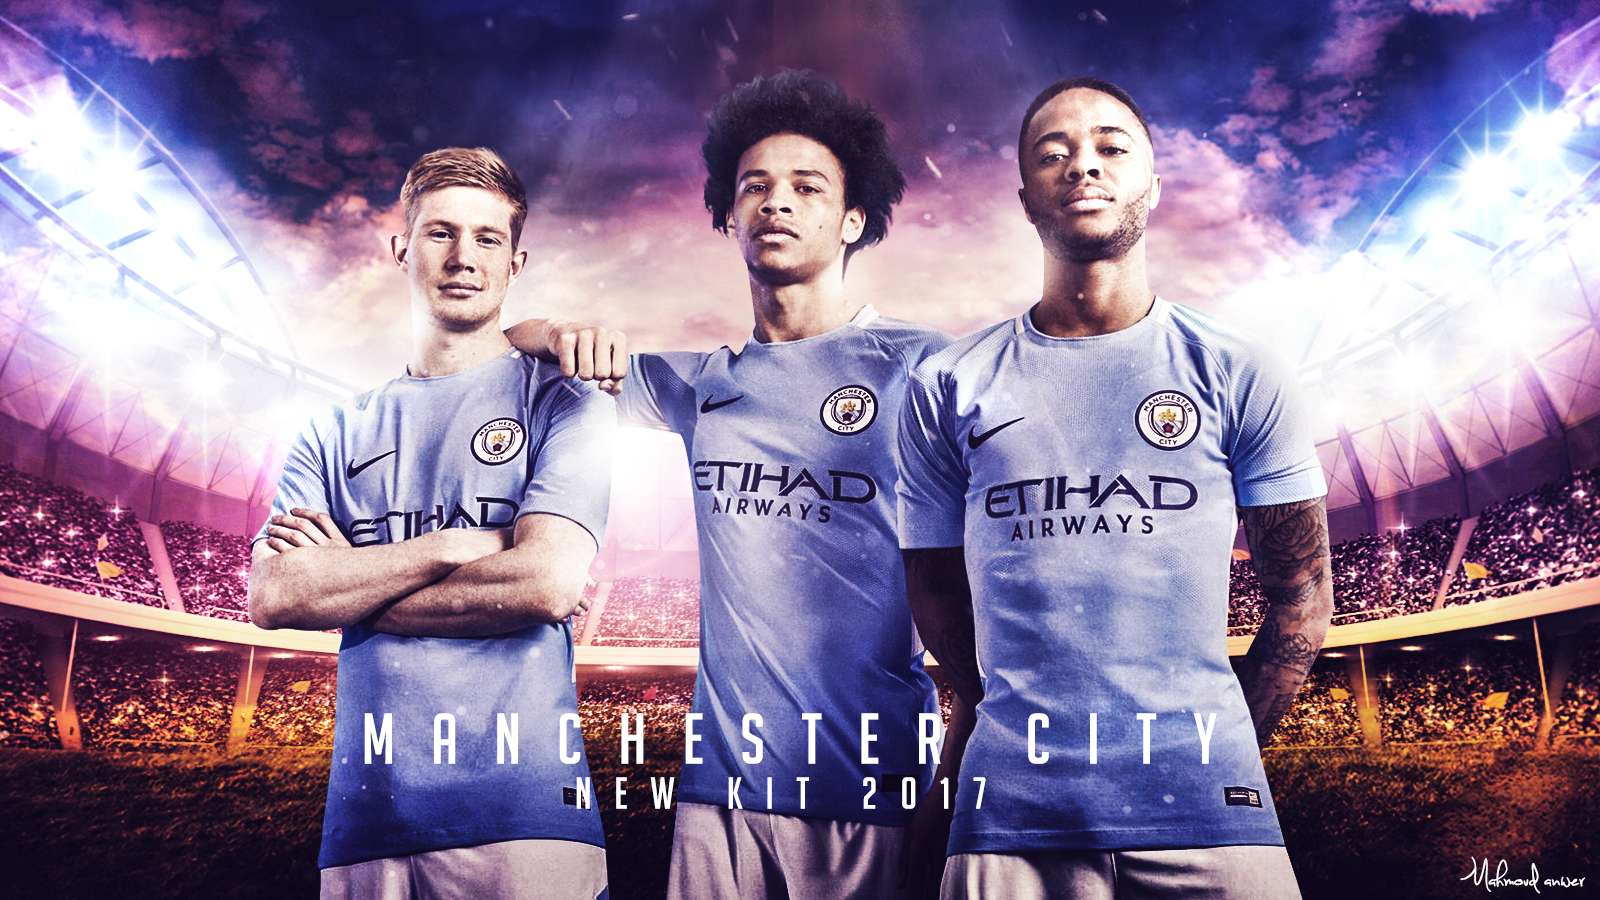 Manchester City 2017 Wallpaper By Mahmoddesigner On Deviantart